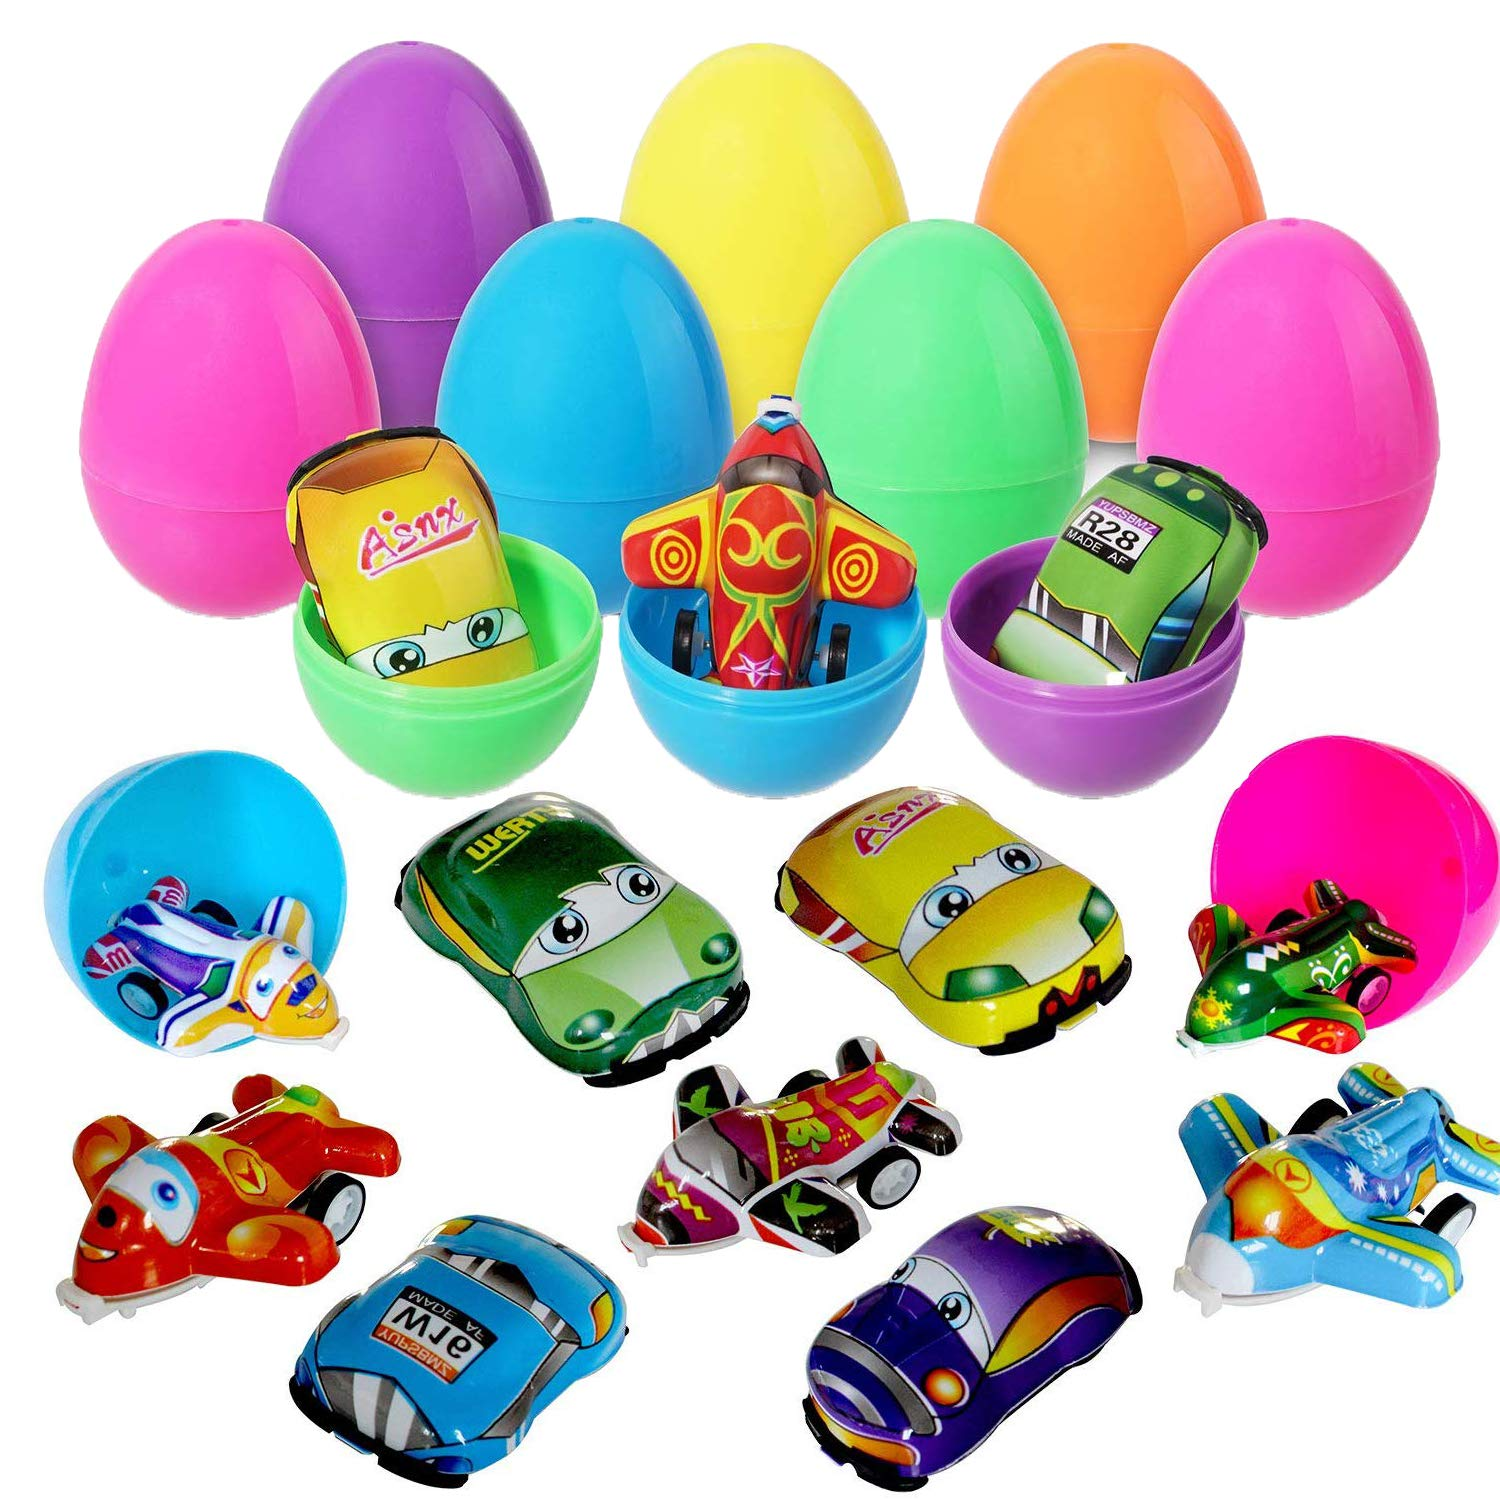 MAIAGO 12Pack Plastic Easter Eggs 3.5 inch, Surprise Easter Eggs Filled with Pull-Back Vehicle and Plane Toys for Easter Hunts, Basket Stuffers, Easter Party Favor